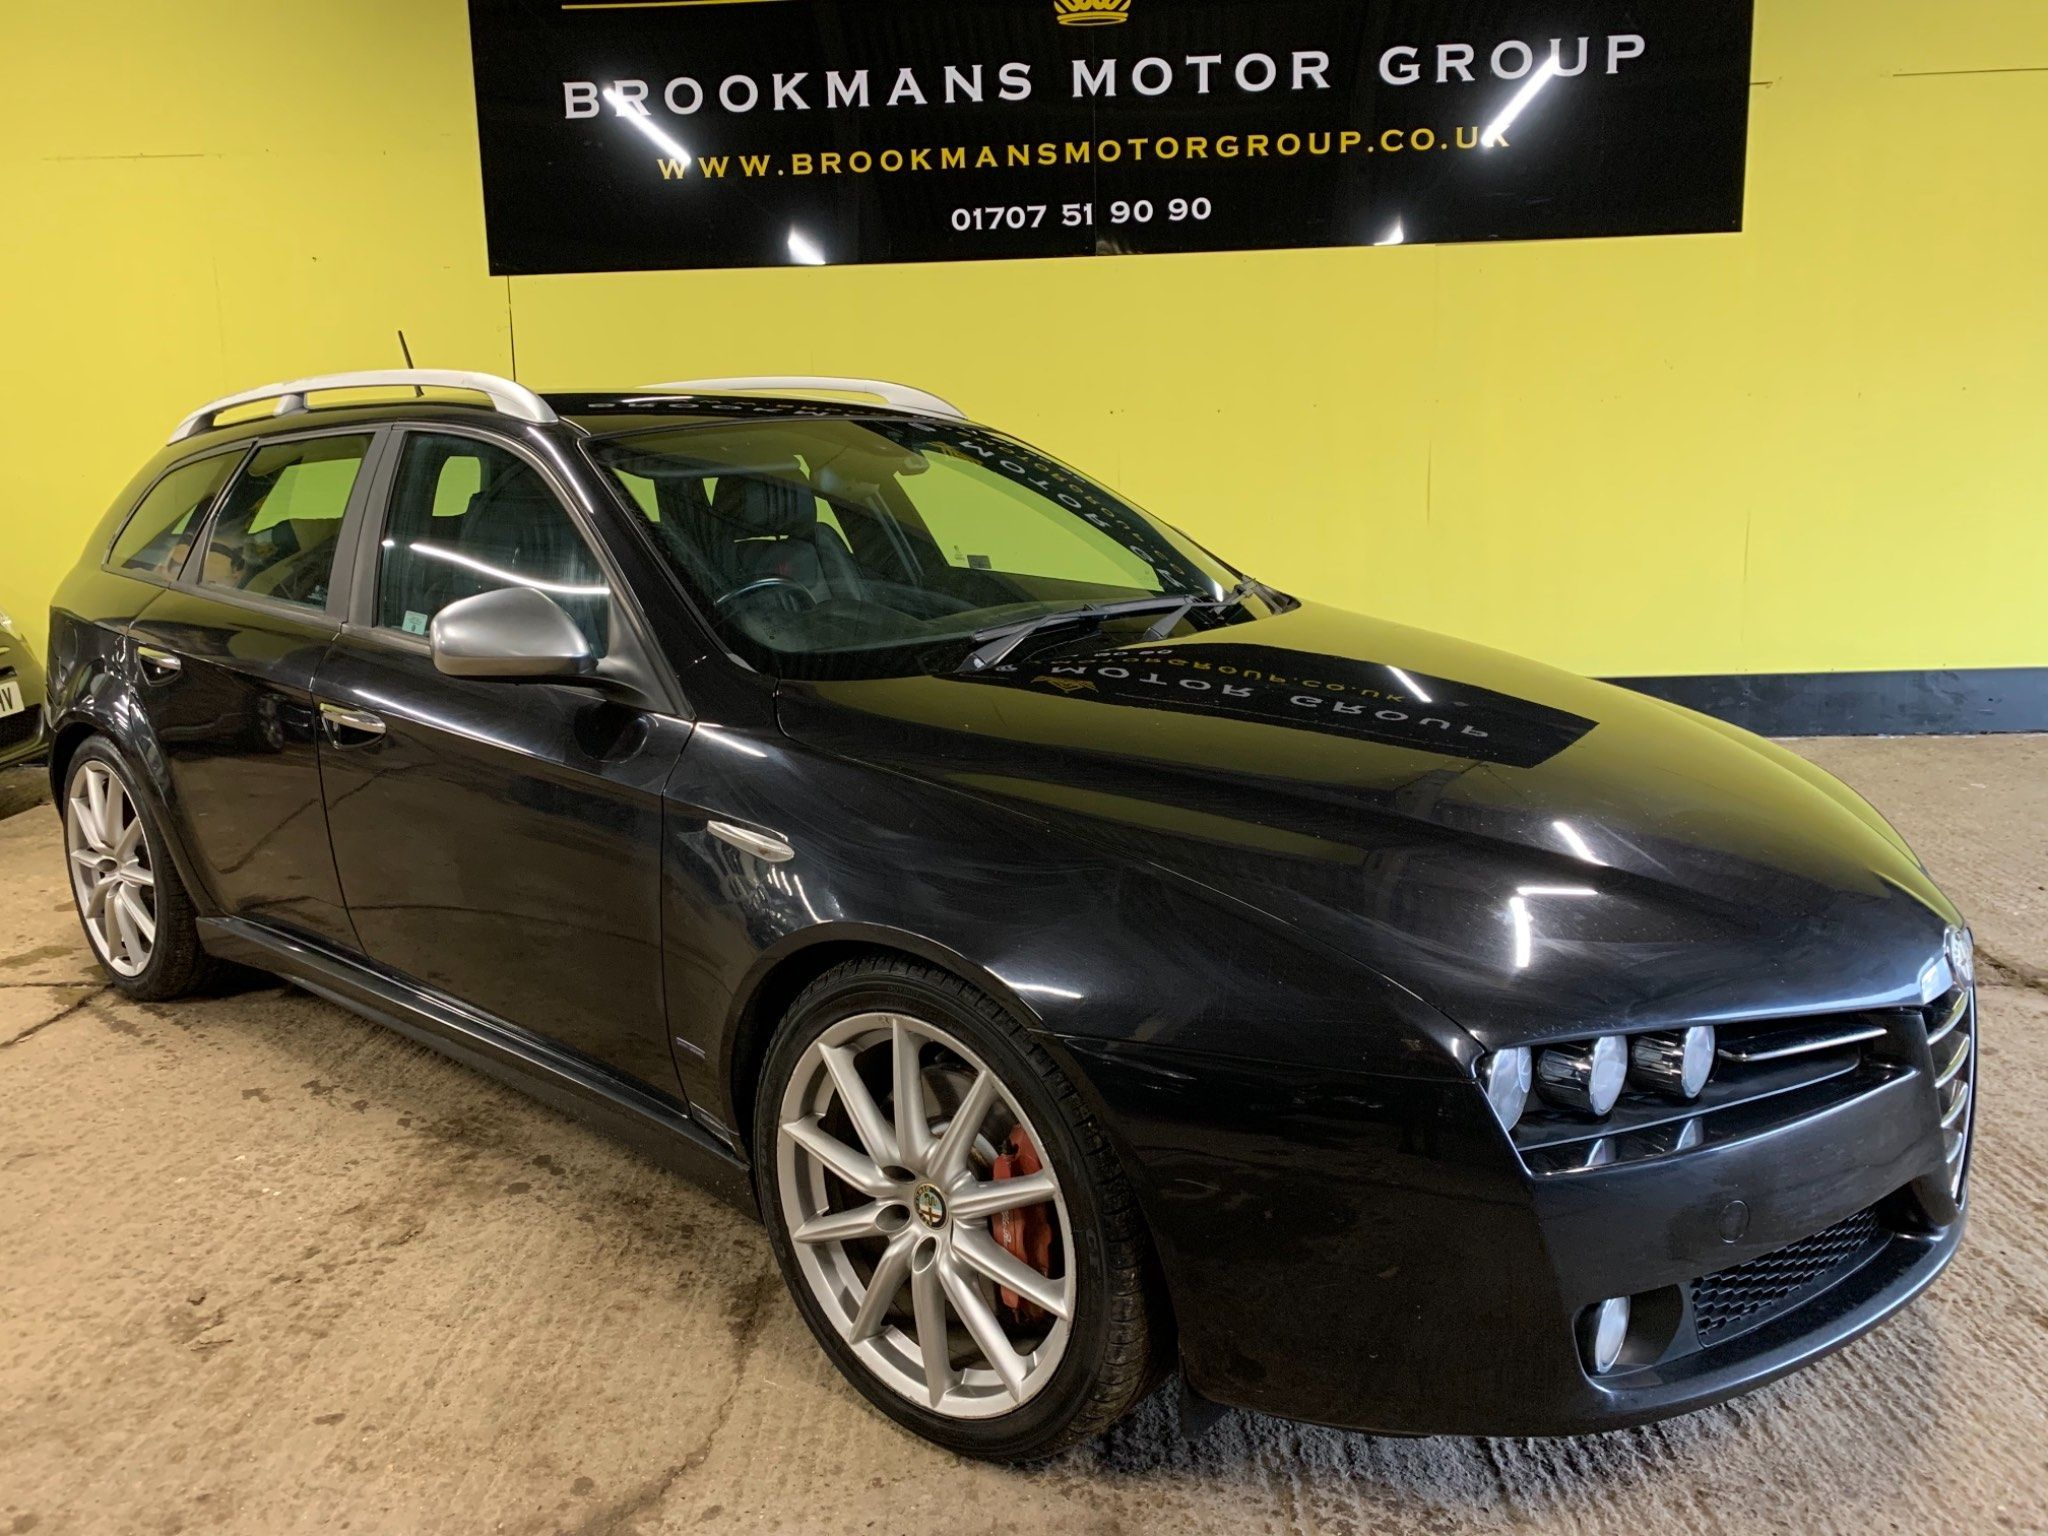 Black Alfa Romeo 159 Sportwagon Used Cars For Sale Autotrader Uk